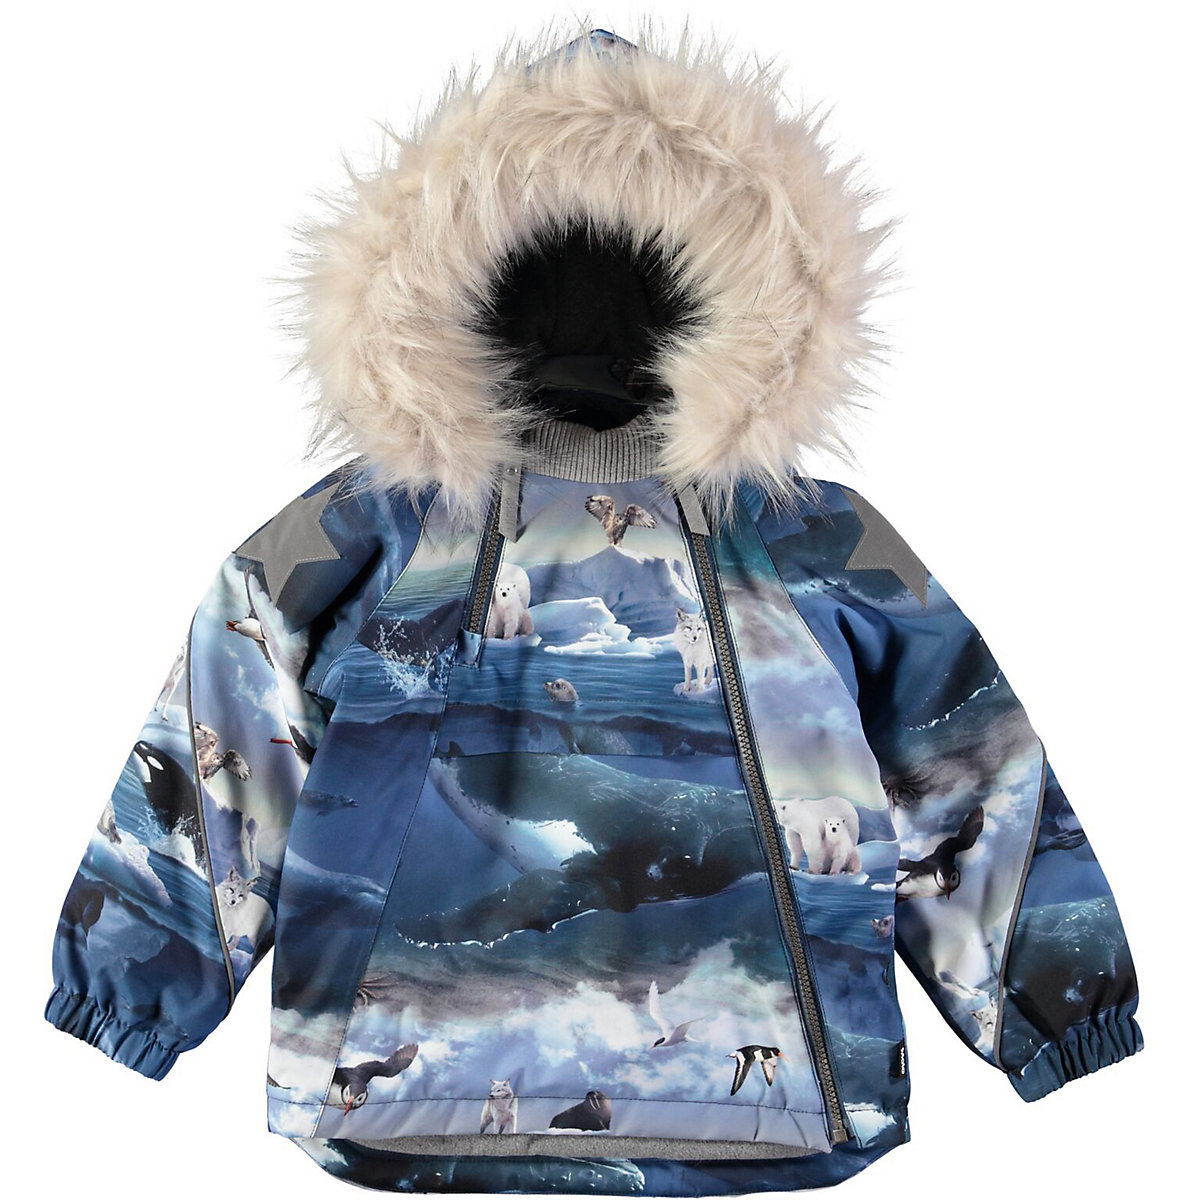 Jackets & Coats MOLO for boys 9170700 Jacket Coat Denim Cardigan Warm Children clothes Kids icebear 2018 short women parkas cotton padded jacket new fashion women s windproof thin cotton jacket warm jacket 16g6117d